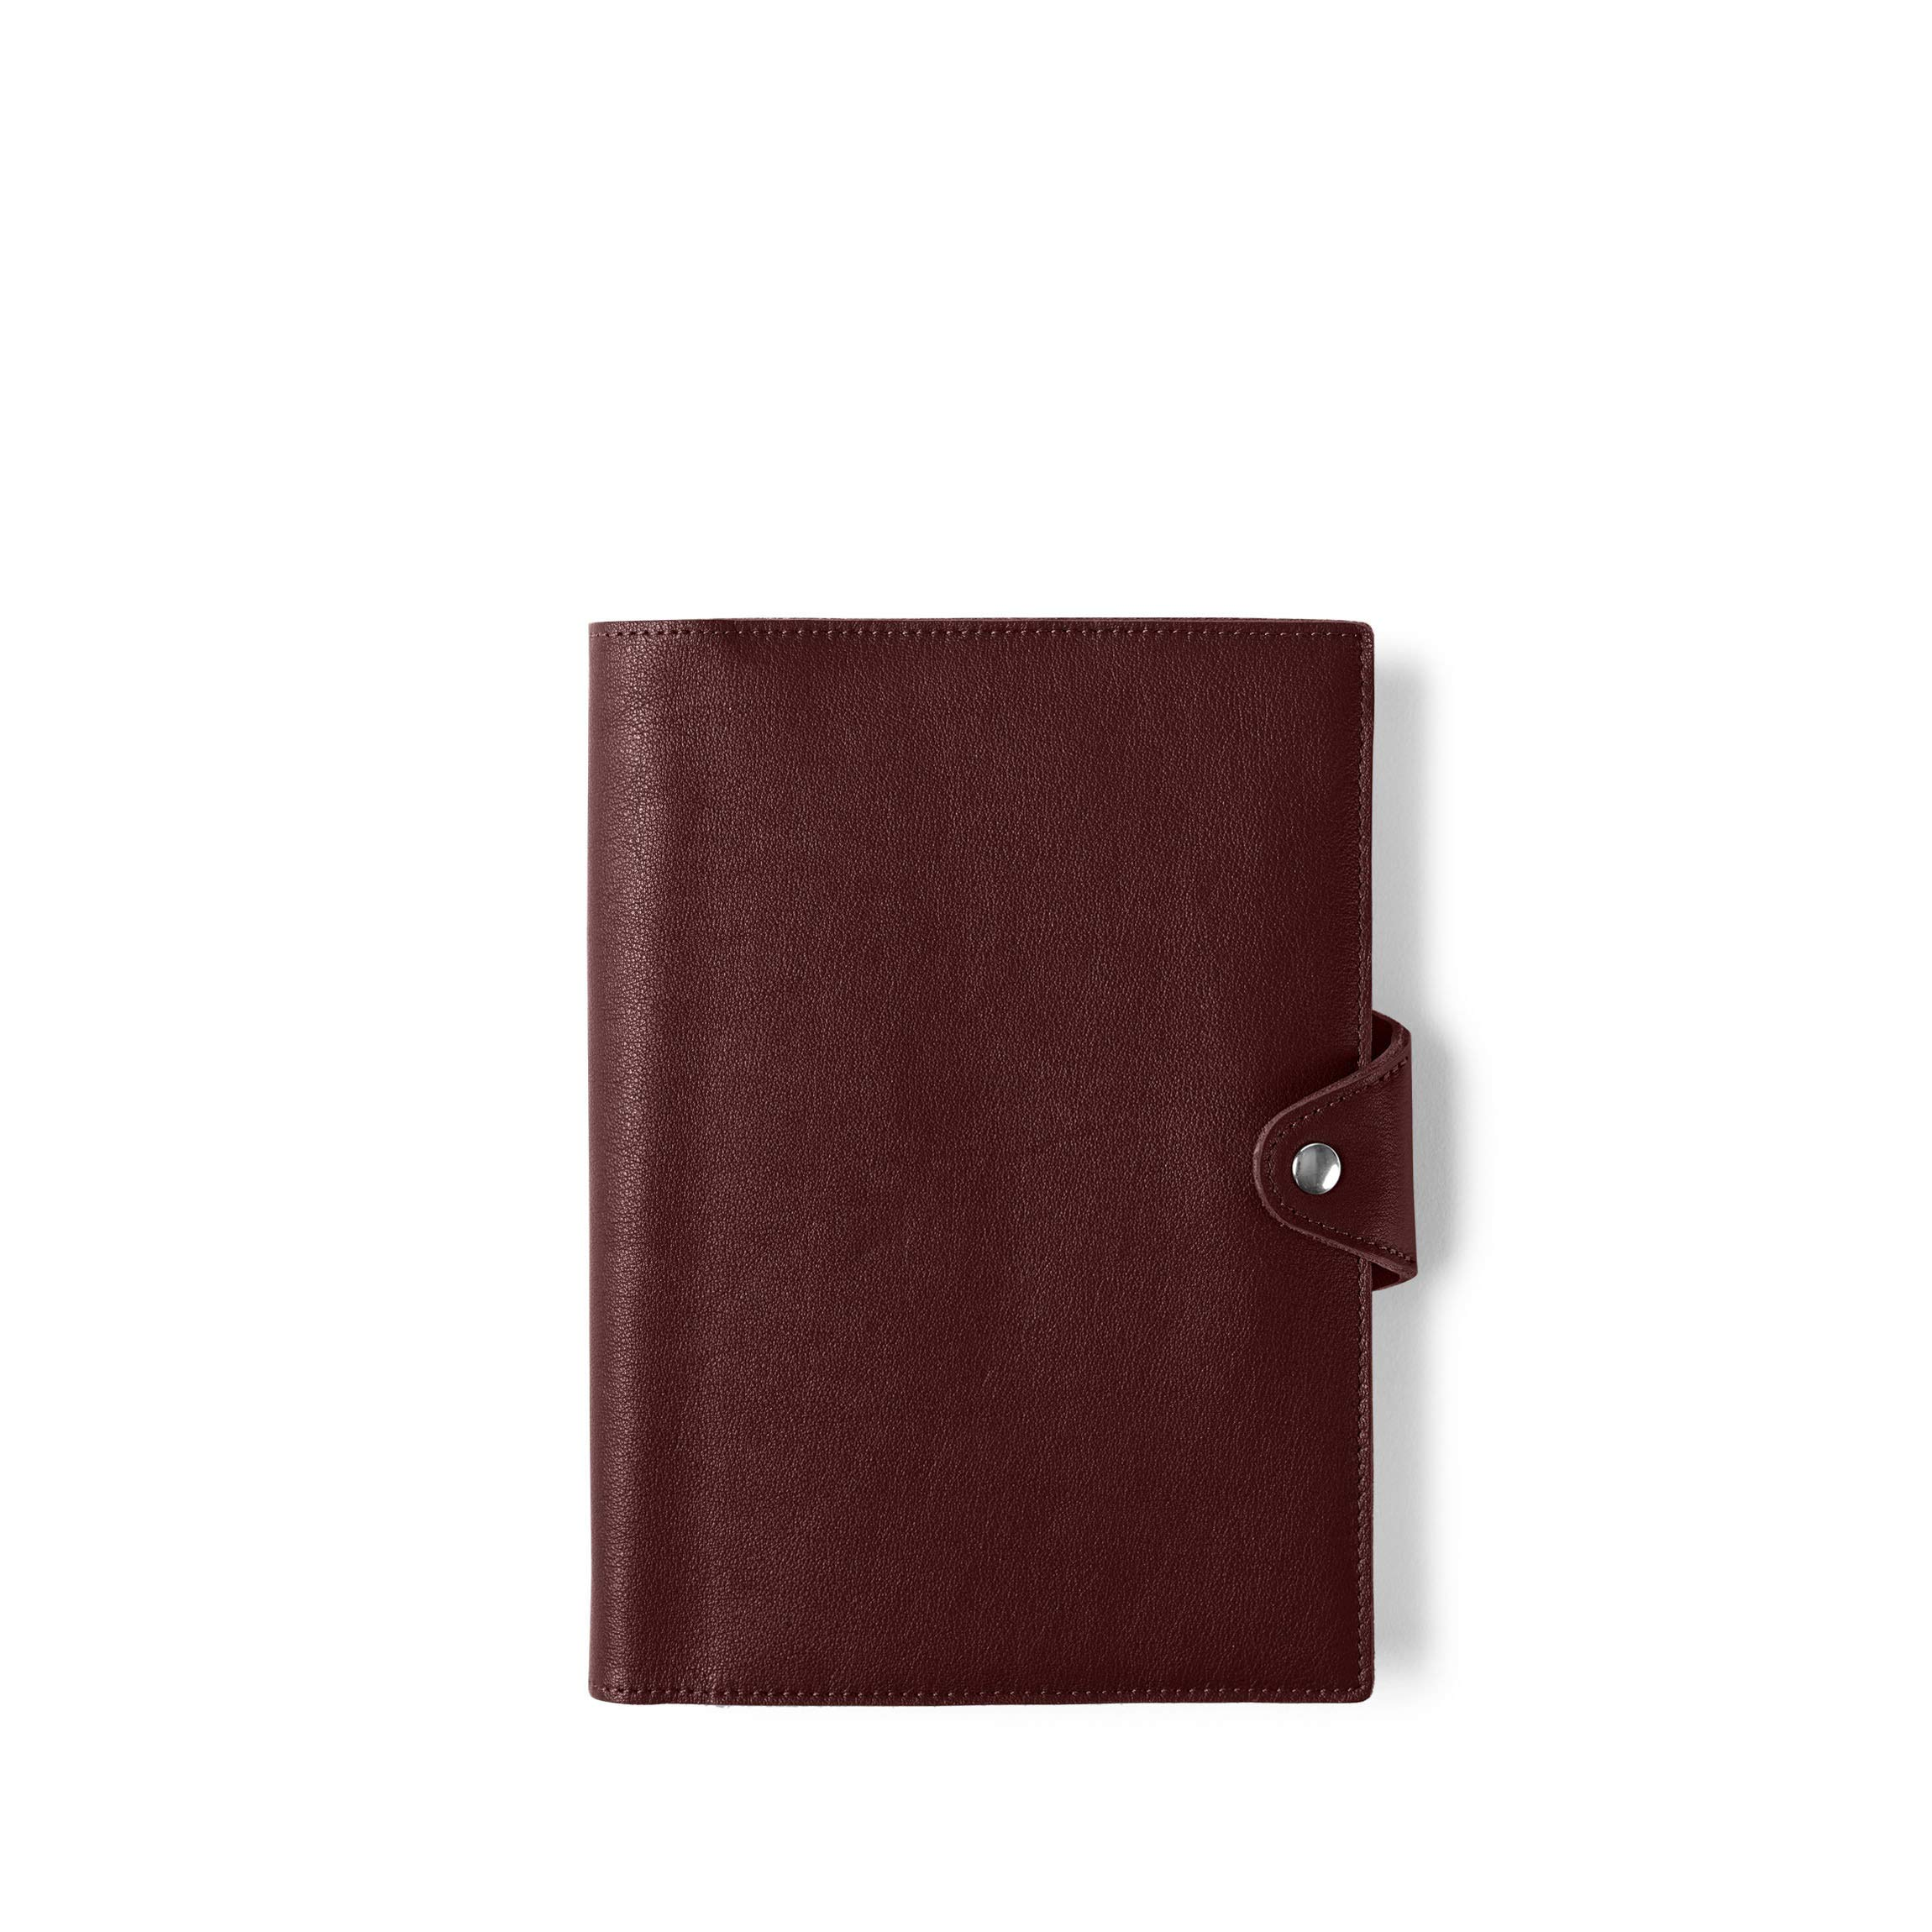 Medium Snap Journal with Pen Loop - Full Grain Leather Leather - Bordeaux (Red)